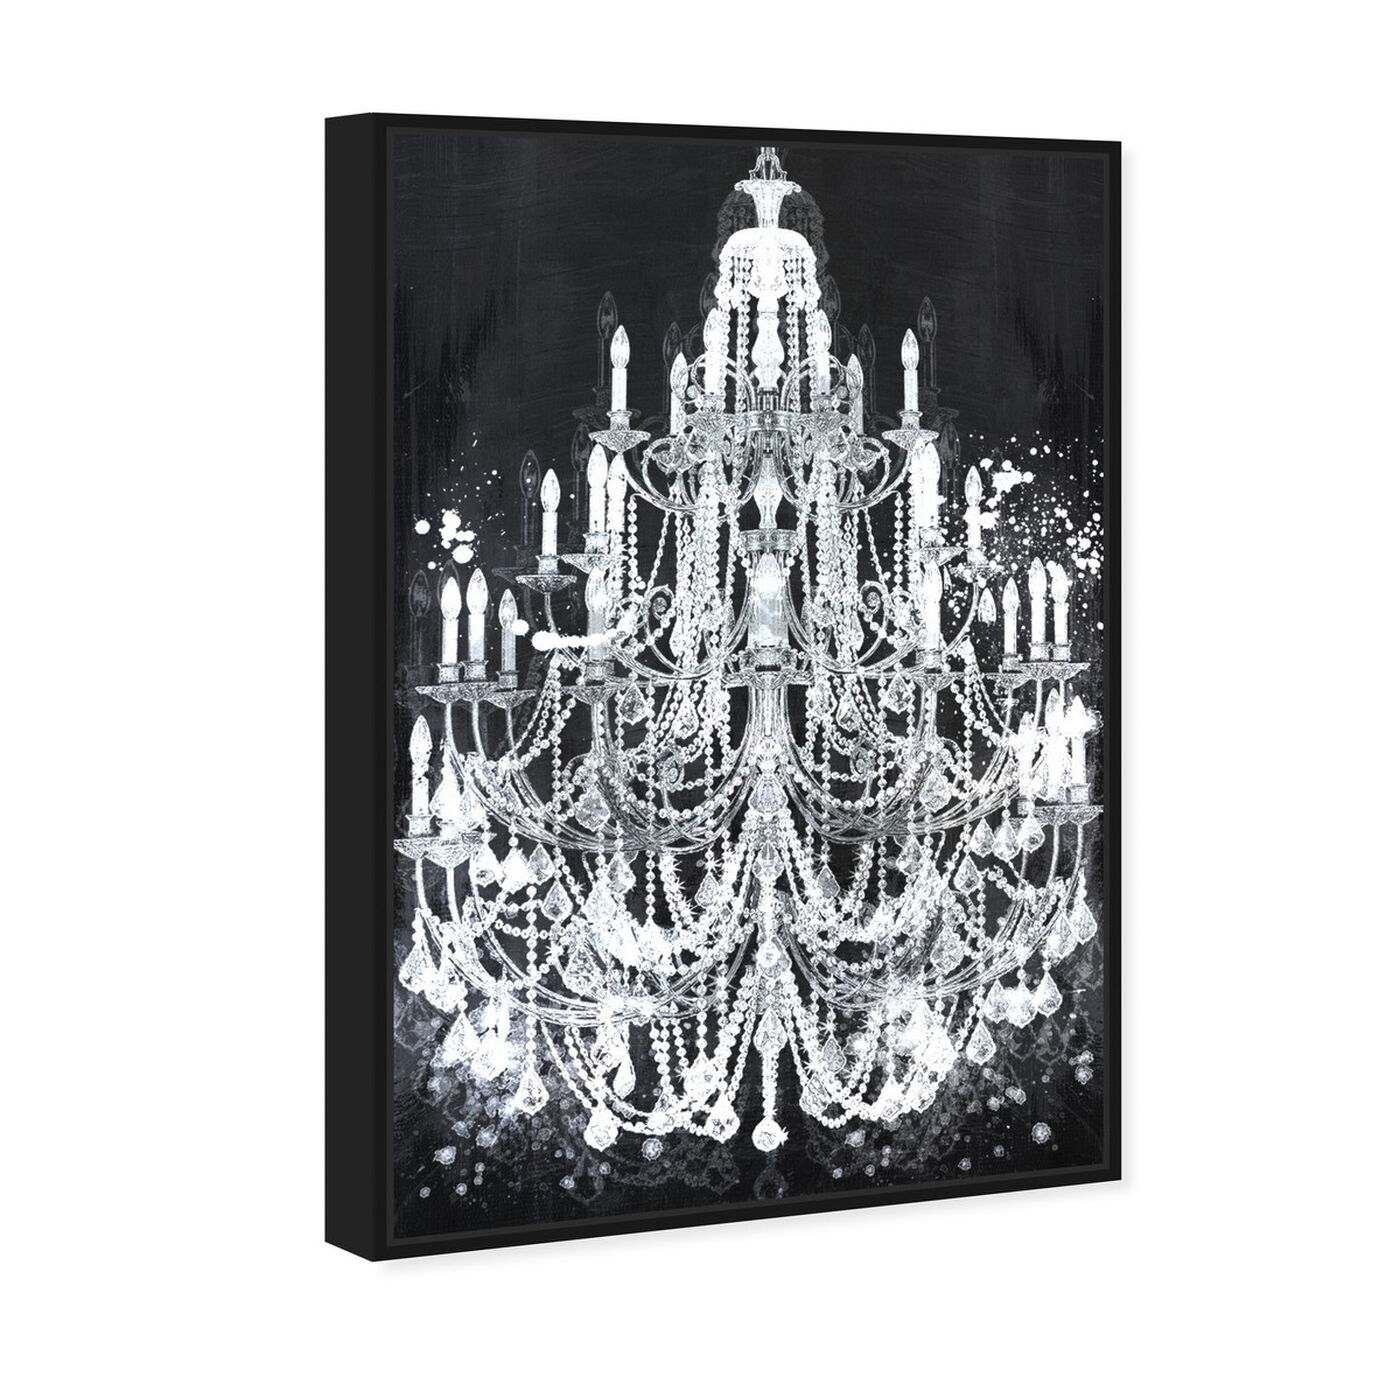 Angled view of Privee Diamonds featuring fashion and glam and chandeliers art.